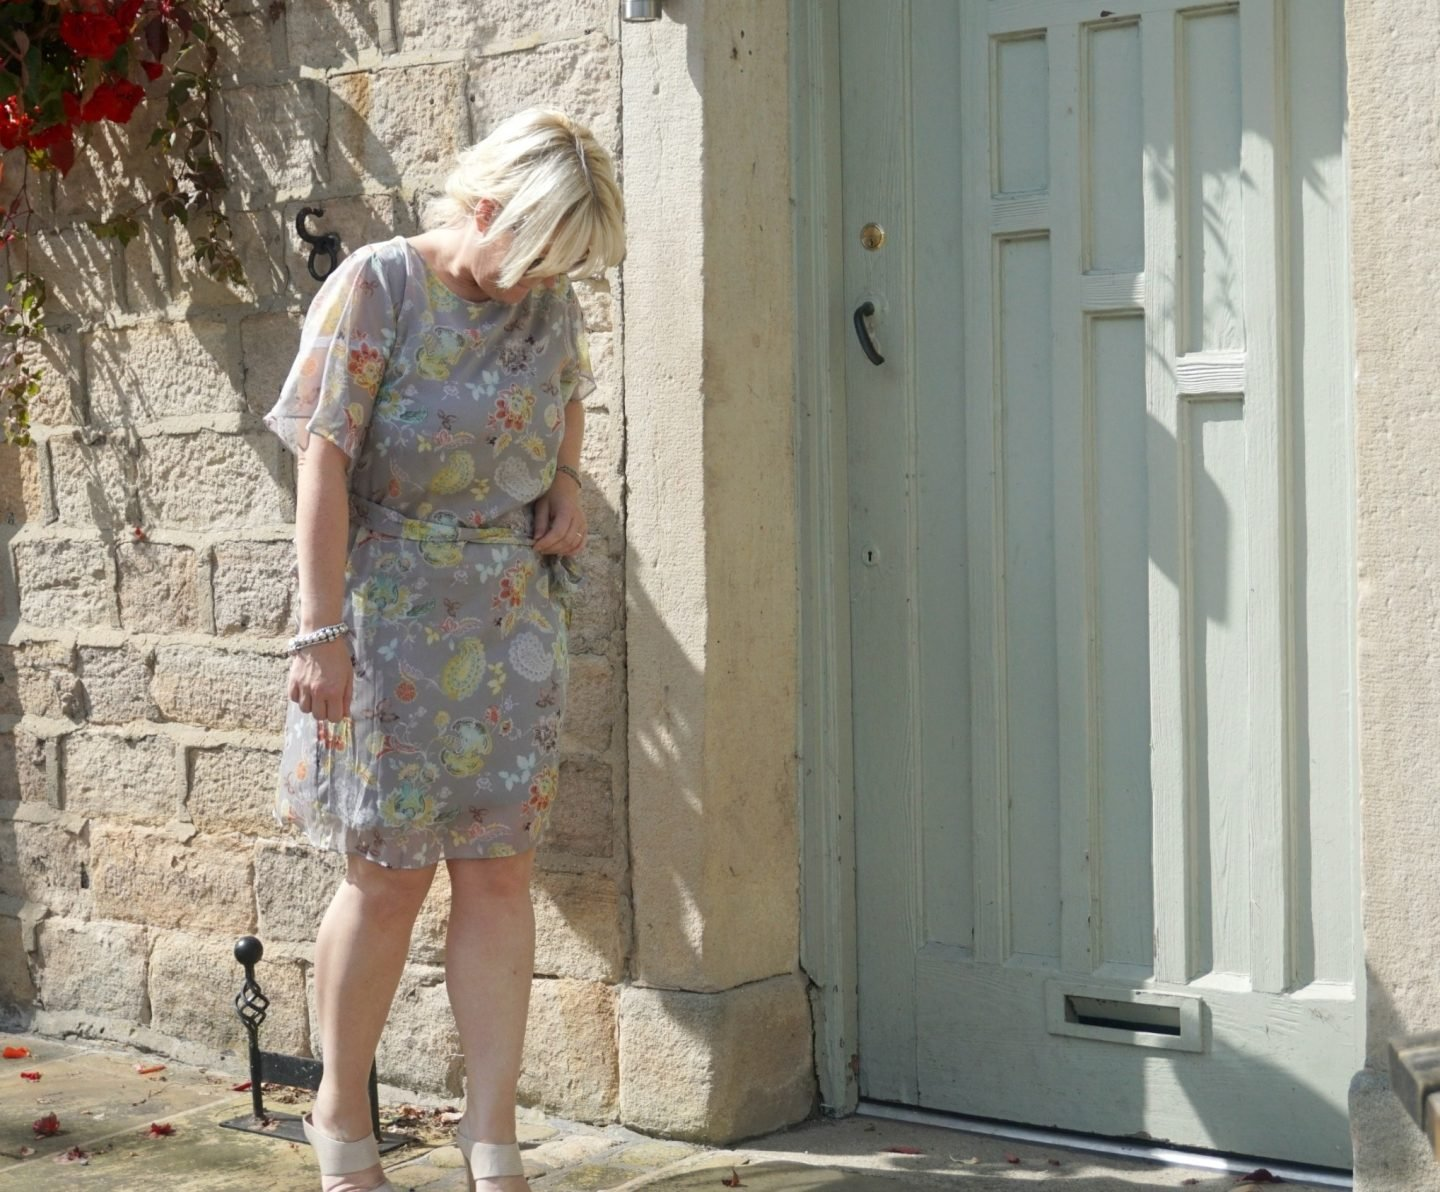 Pretty Dresses From Laura Ashley www.extraordinarychaos.com